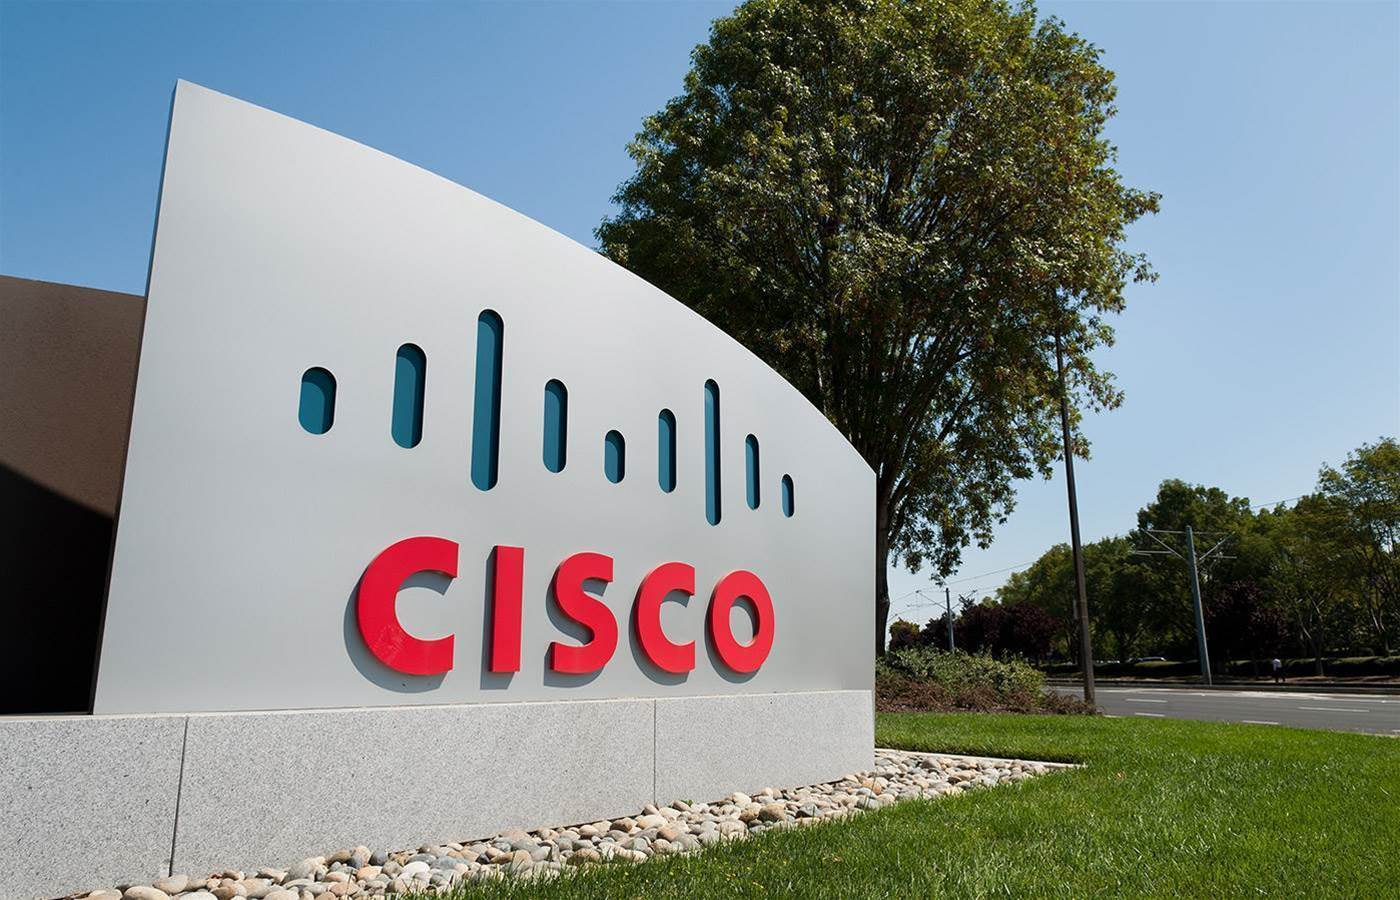 Cisco shares hit as Amazon reportedly develops network switches